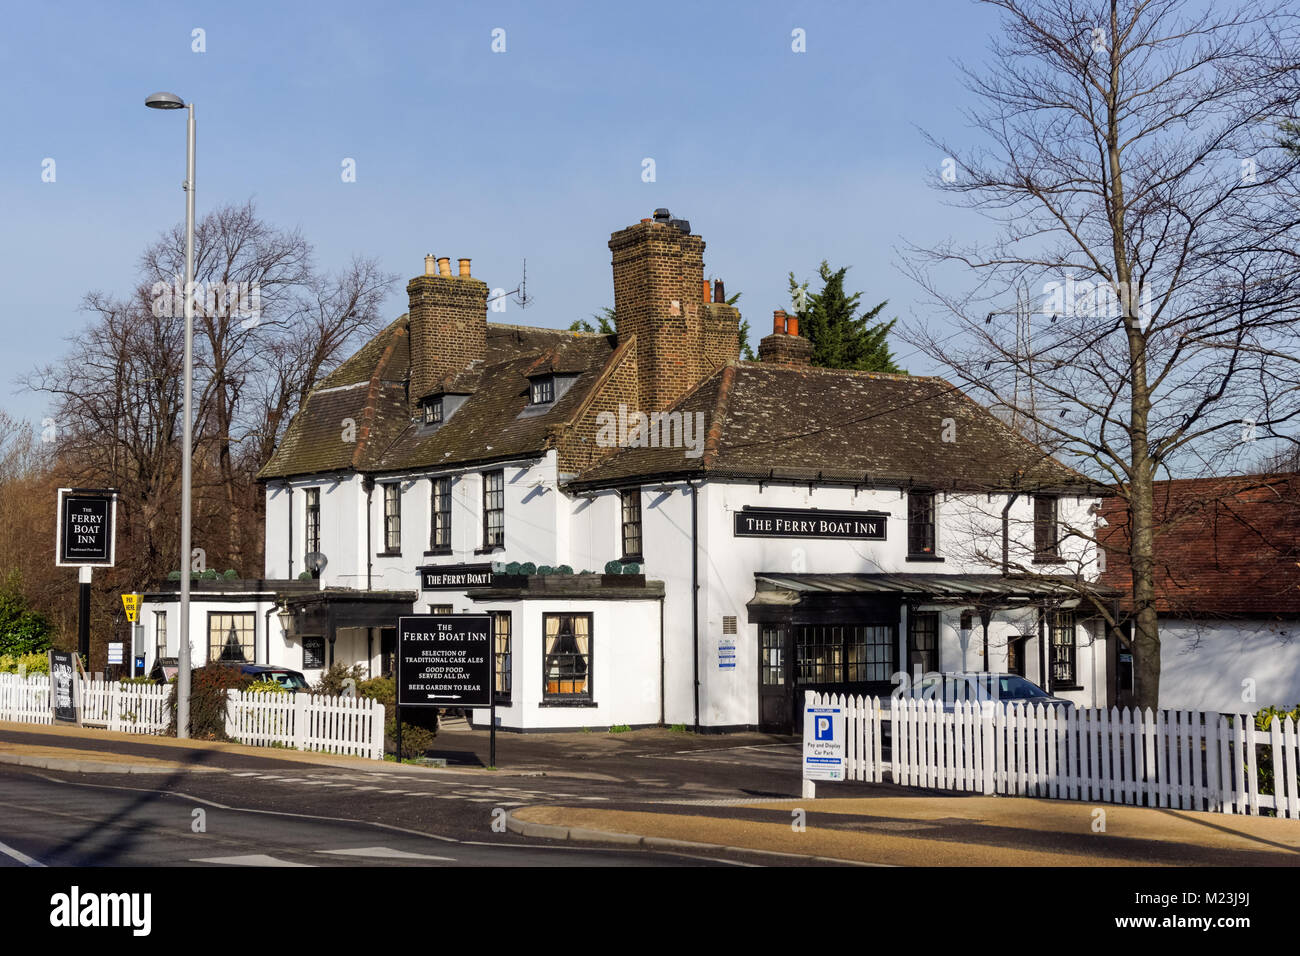 Ferry Boat Inn pub on Ferry Lane in Tottenham in London, England United Kingdom UK - Stock Image